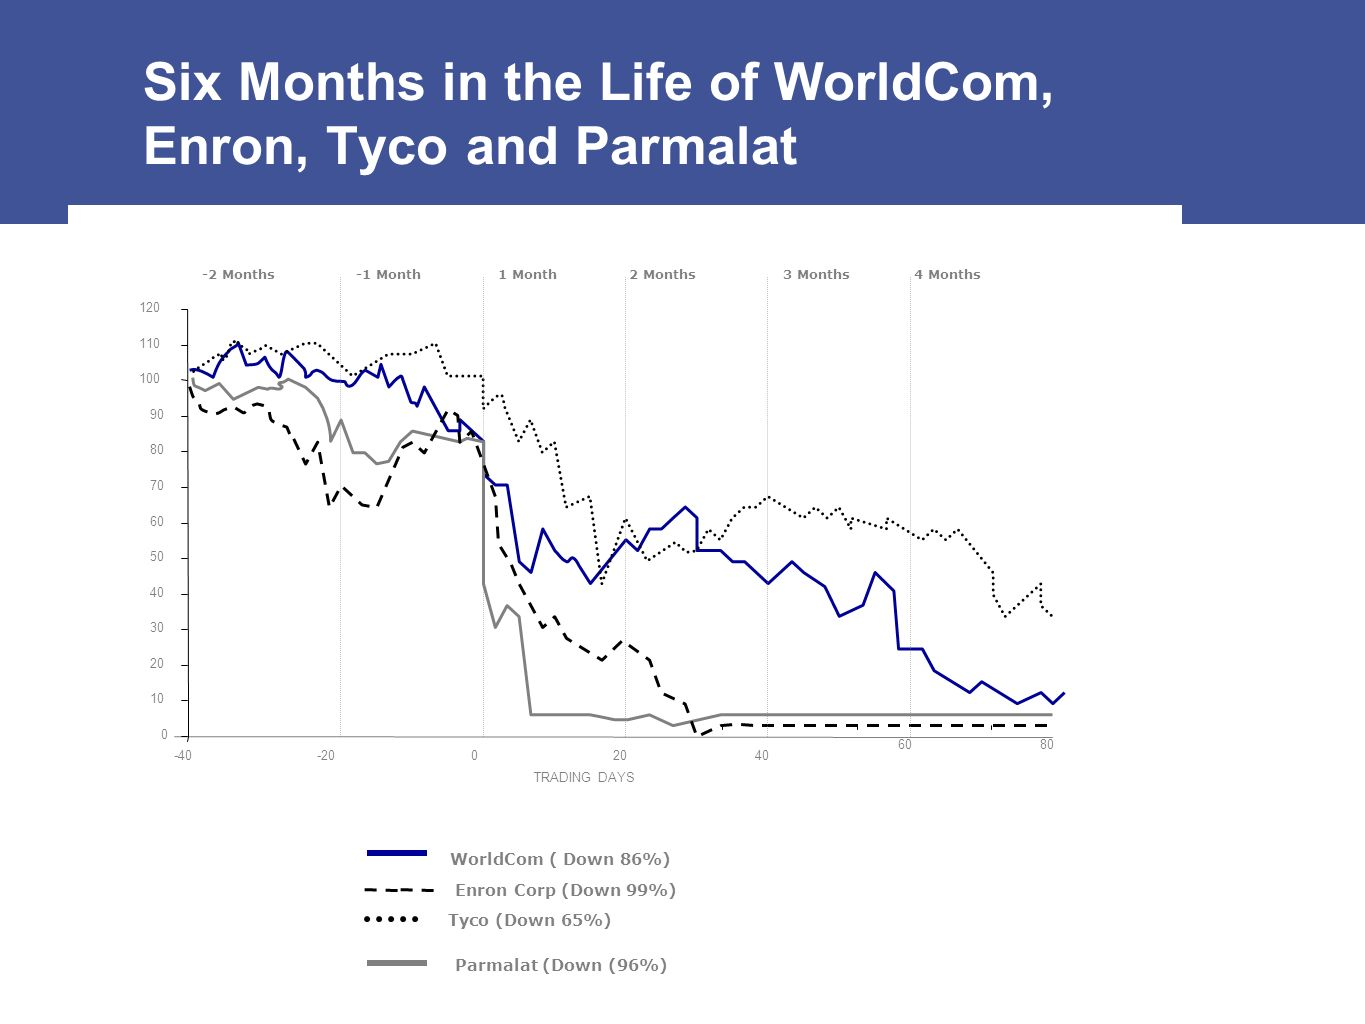 Six Months in the Life of WorldCom, Enron, Tyco and Parmalat